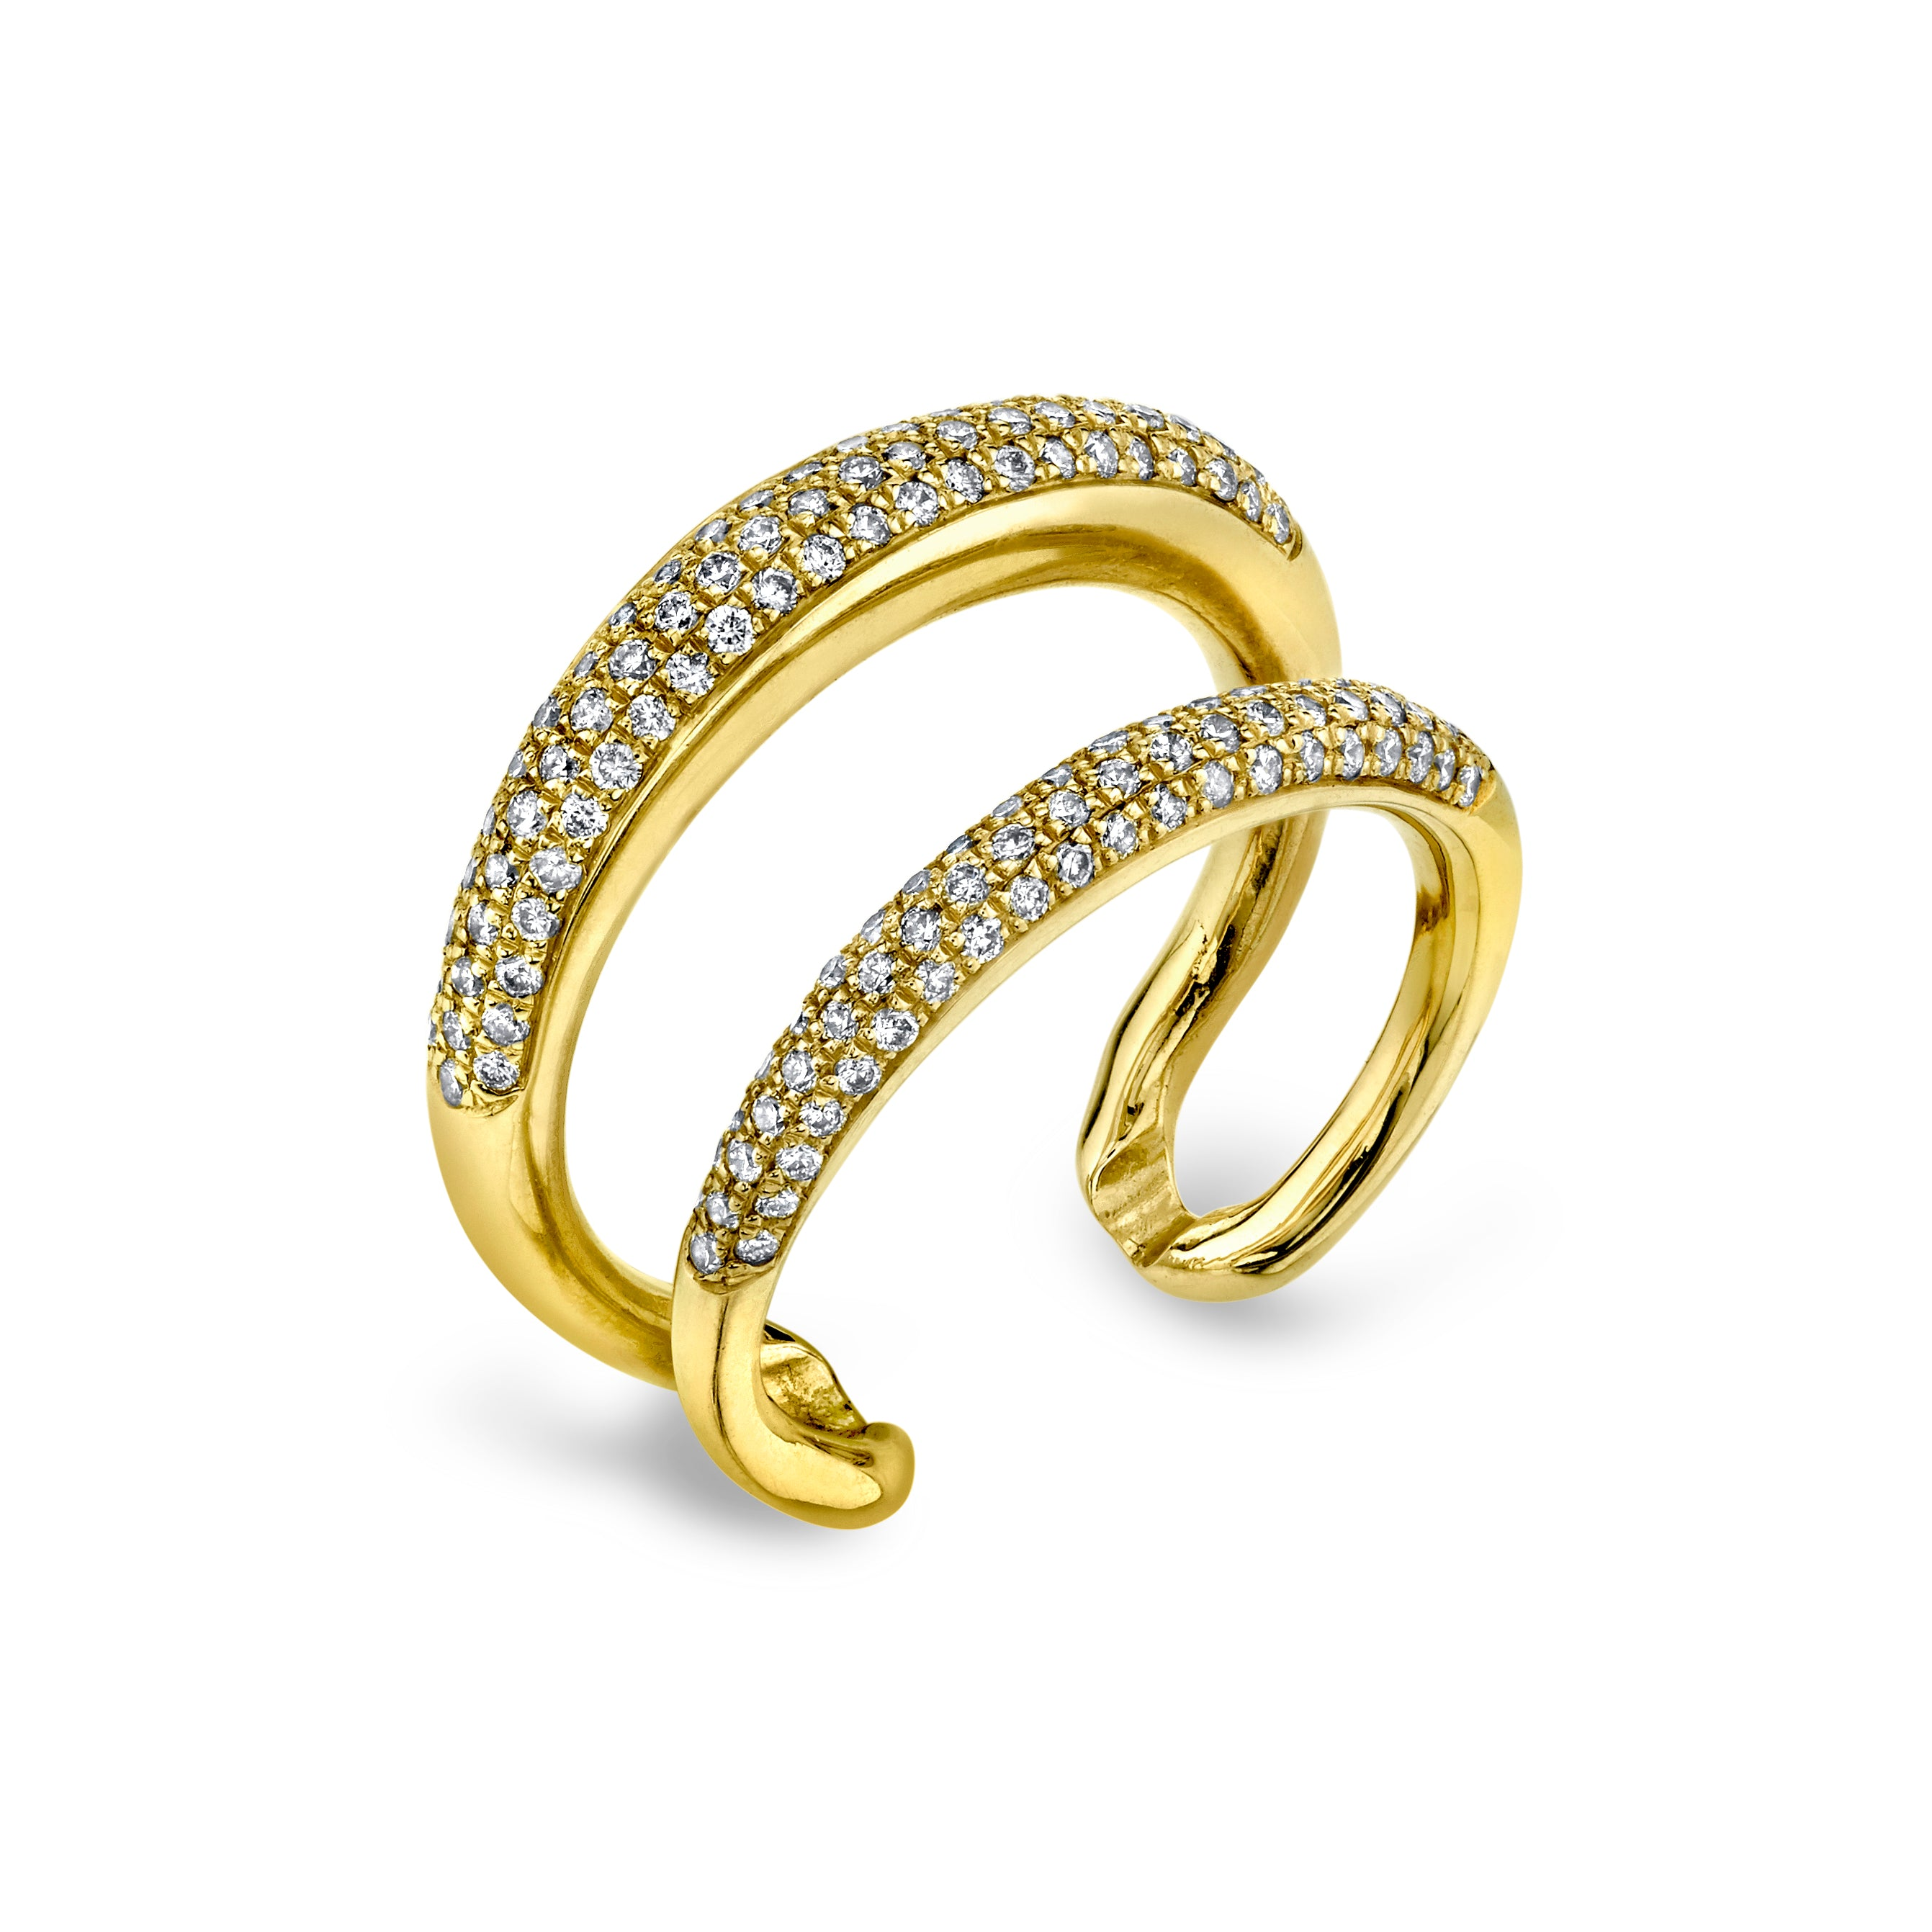 Twin Tusk Ring With Double White Pavé Diamonds - Gabriela Artigas